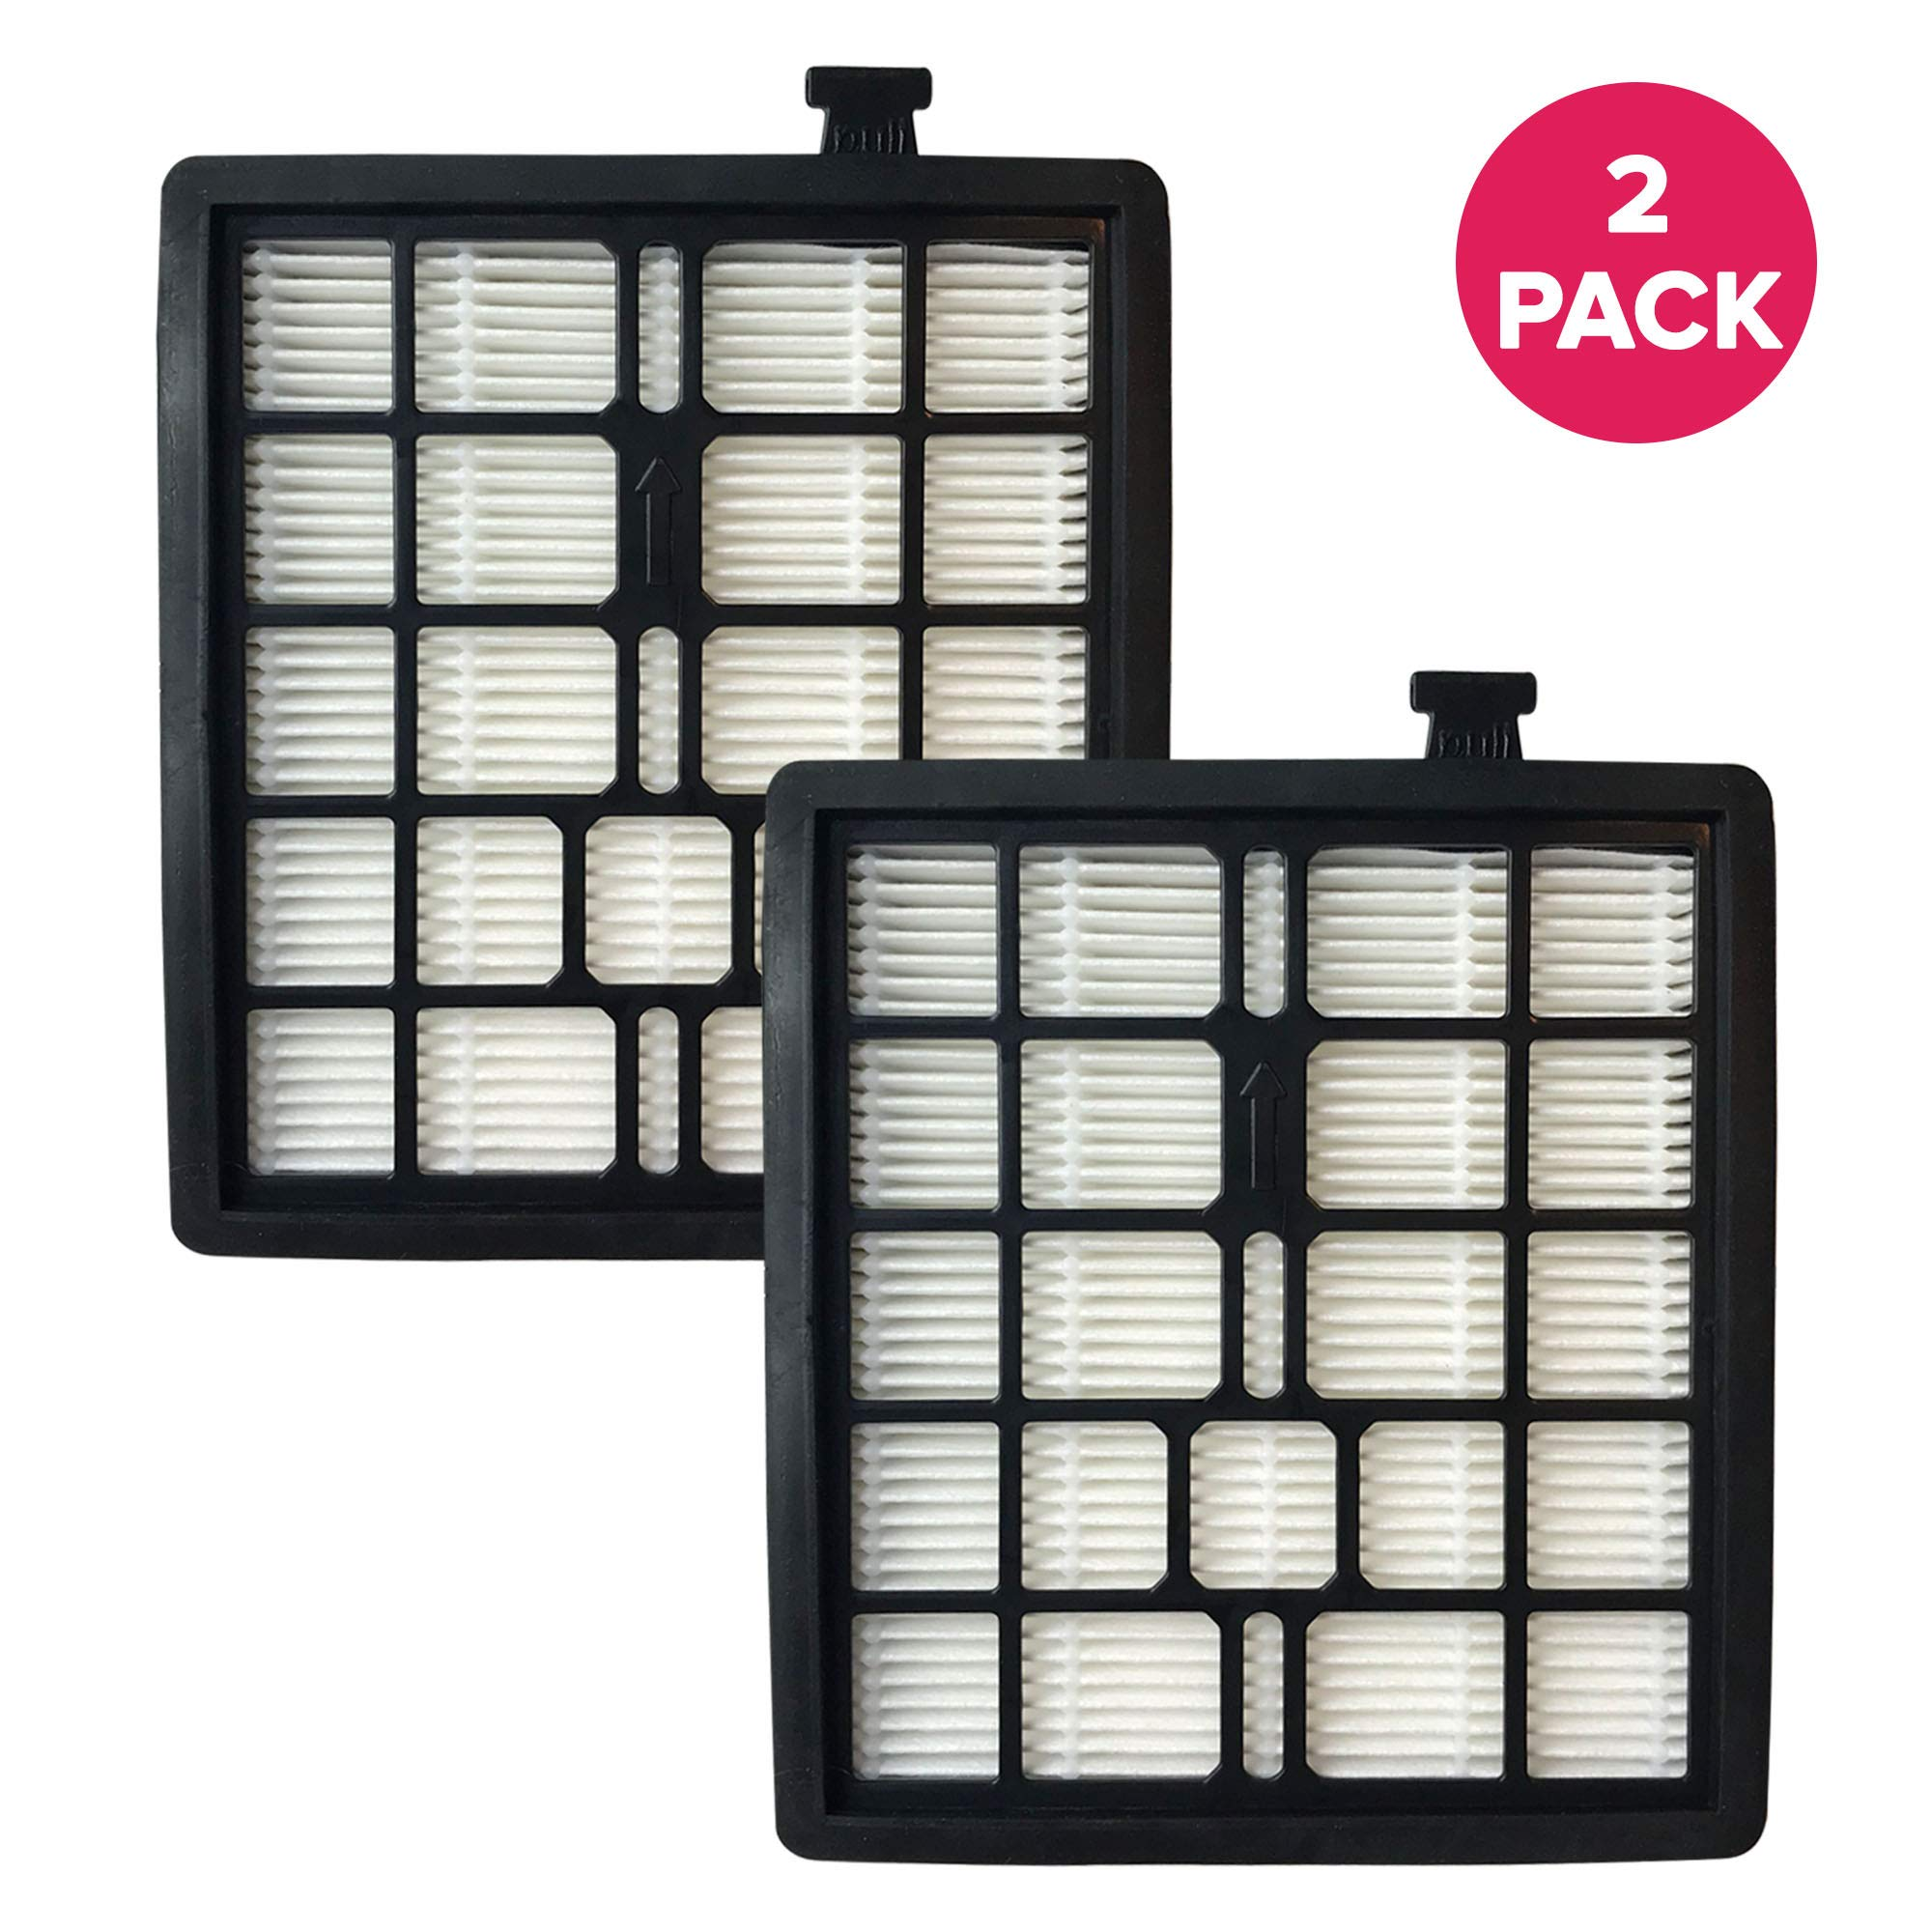 Crucial Vacuum Replacement Vacuum Filter Compatible with Dirt Devil Vacs - Part F45 - Fits Models Pets Canister SD40000, EZ Lite Canister SD40010, Parts 2KQ0107000 2-KQ0107-000 F45 F-45 Bulk (2-Pack)